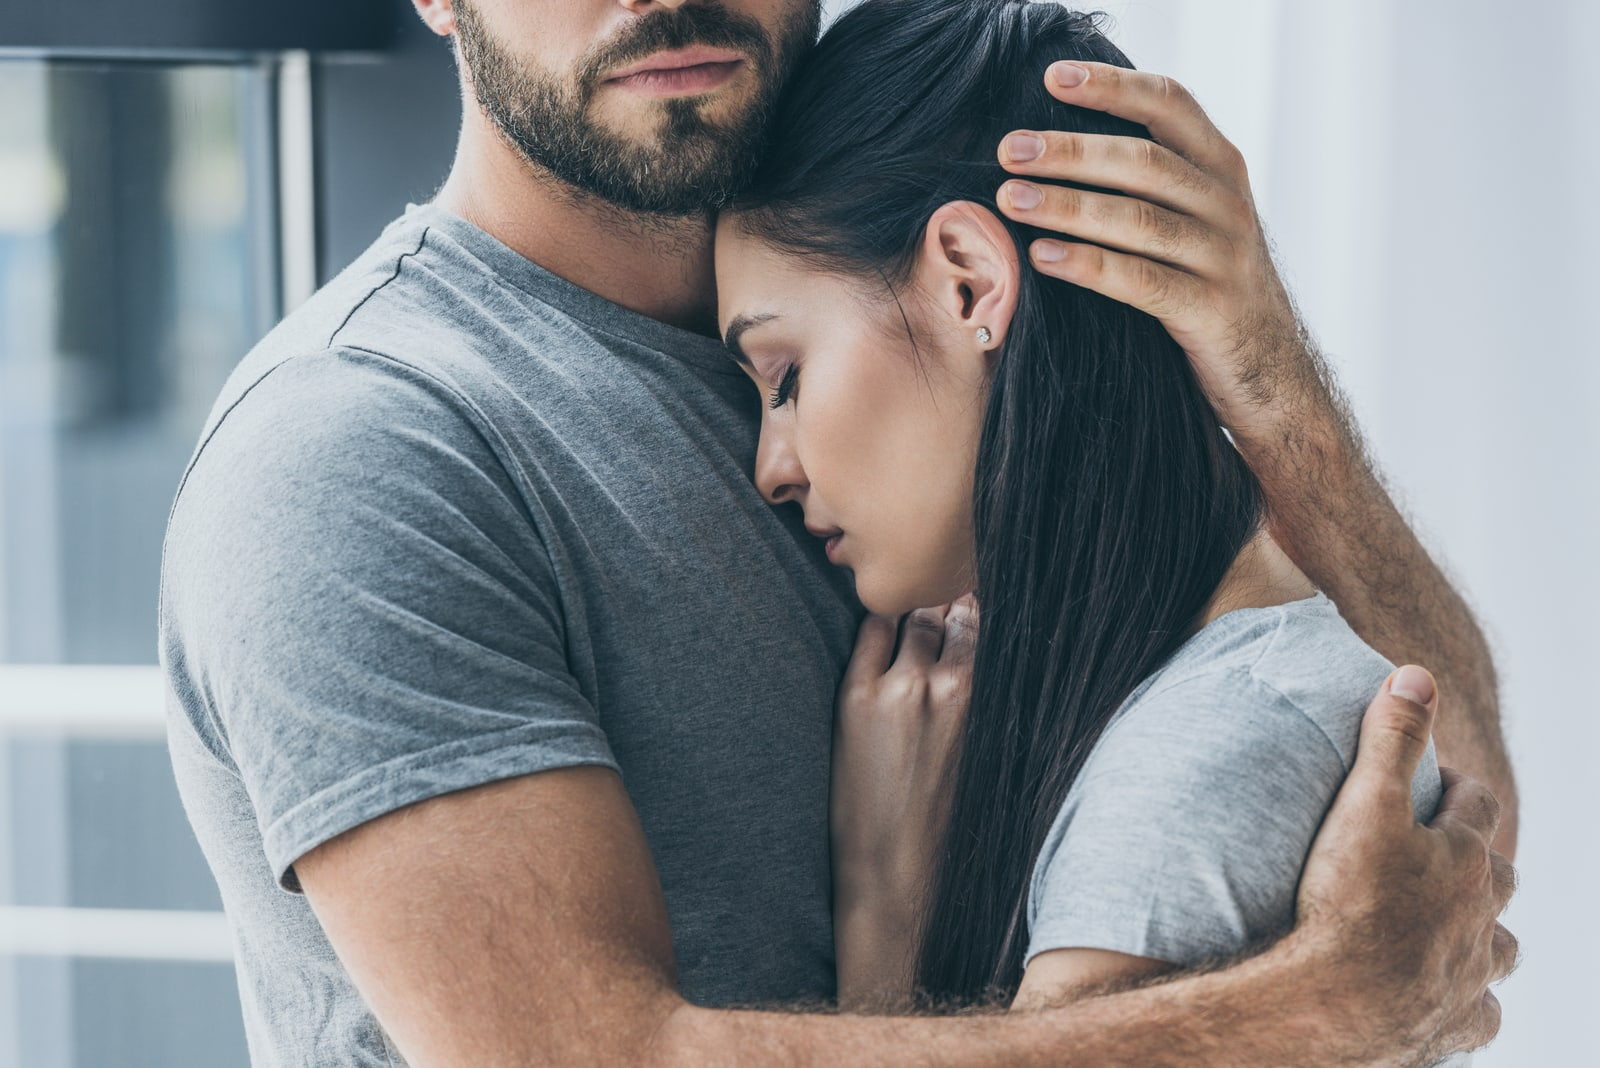 man hugging and consoling woman